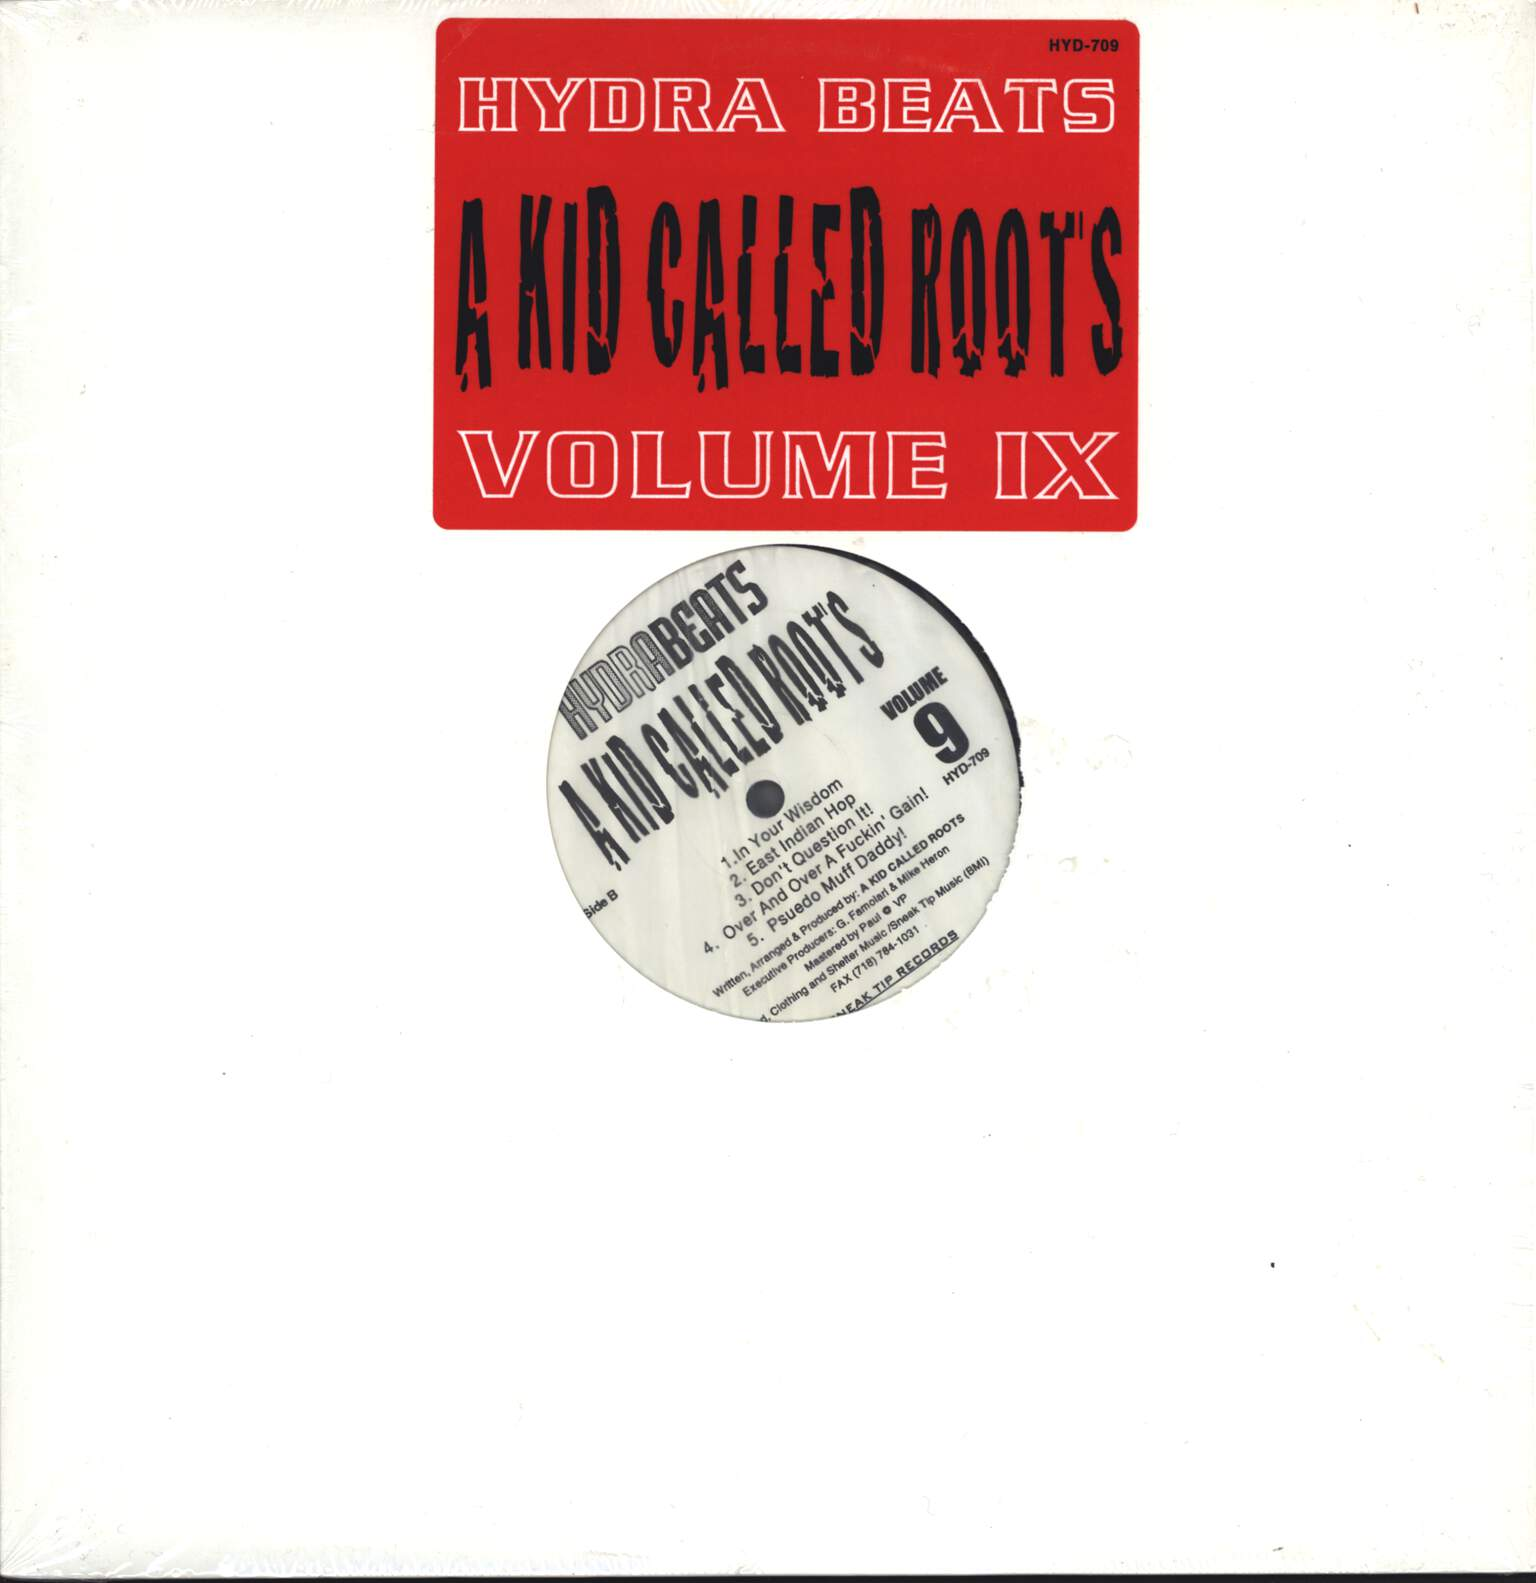 A Kid Called Roots: Hydra Beats Volume 9, LP (Vinyl)